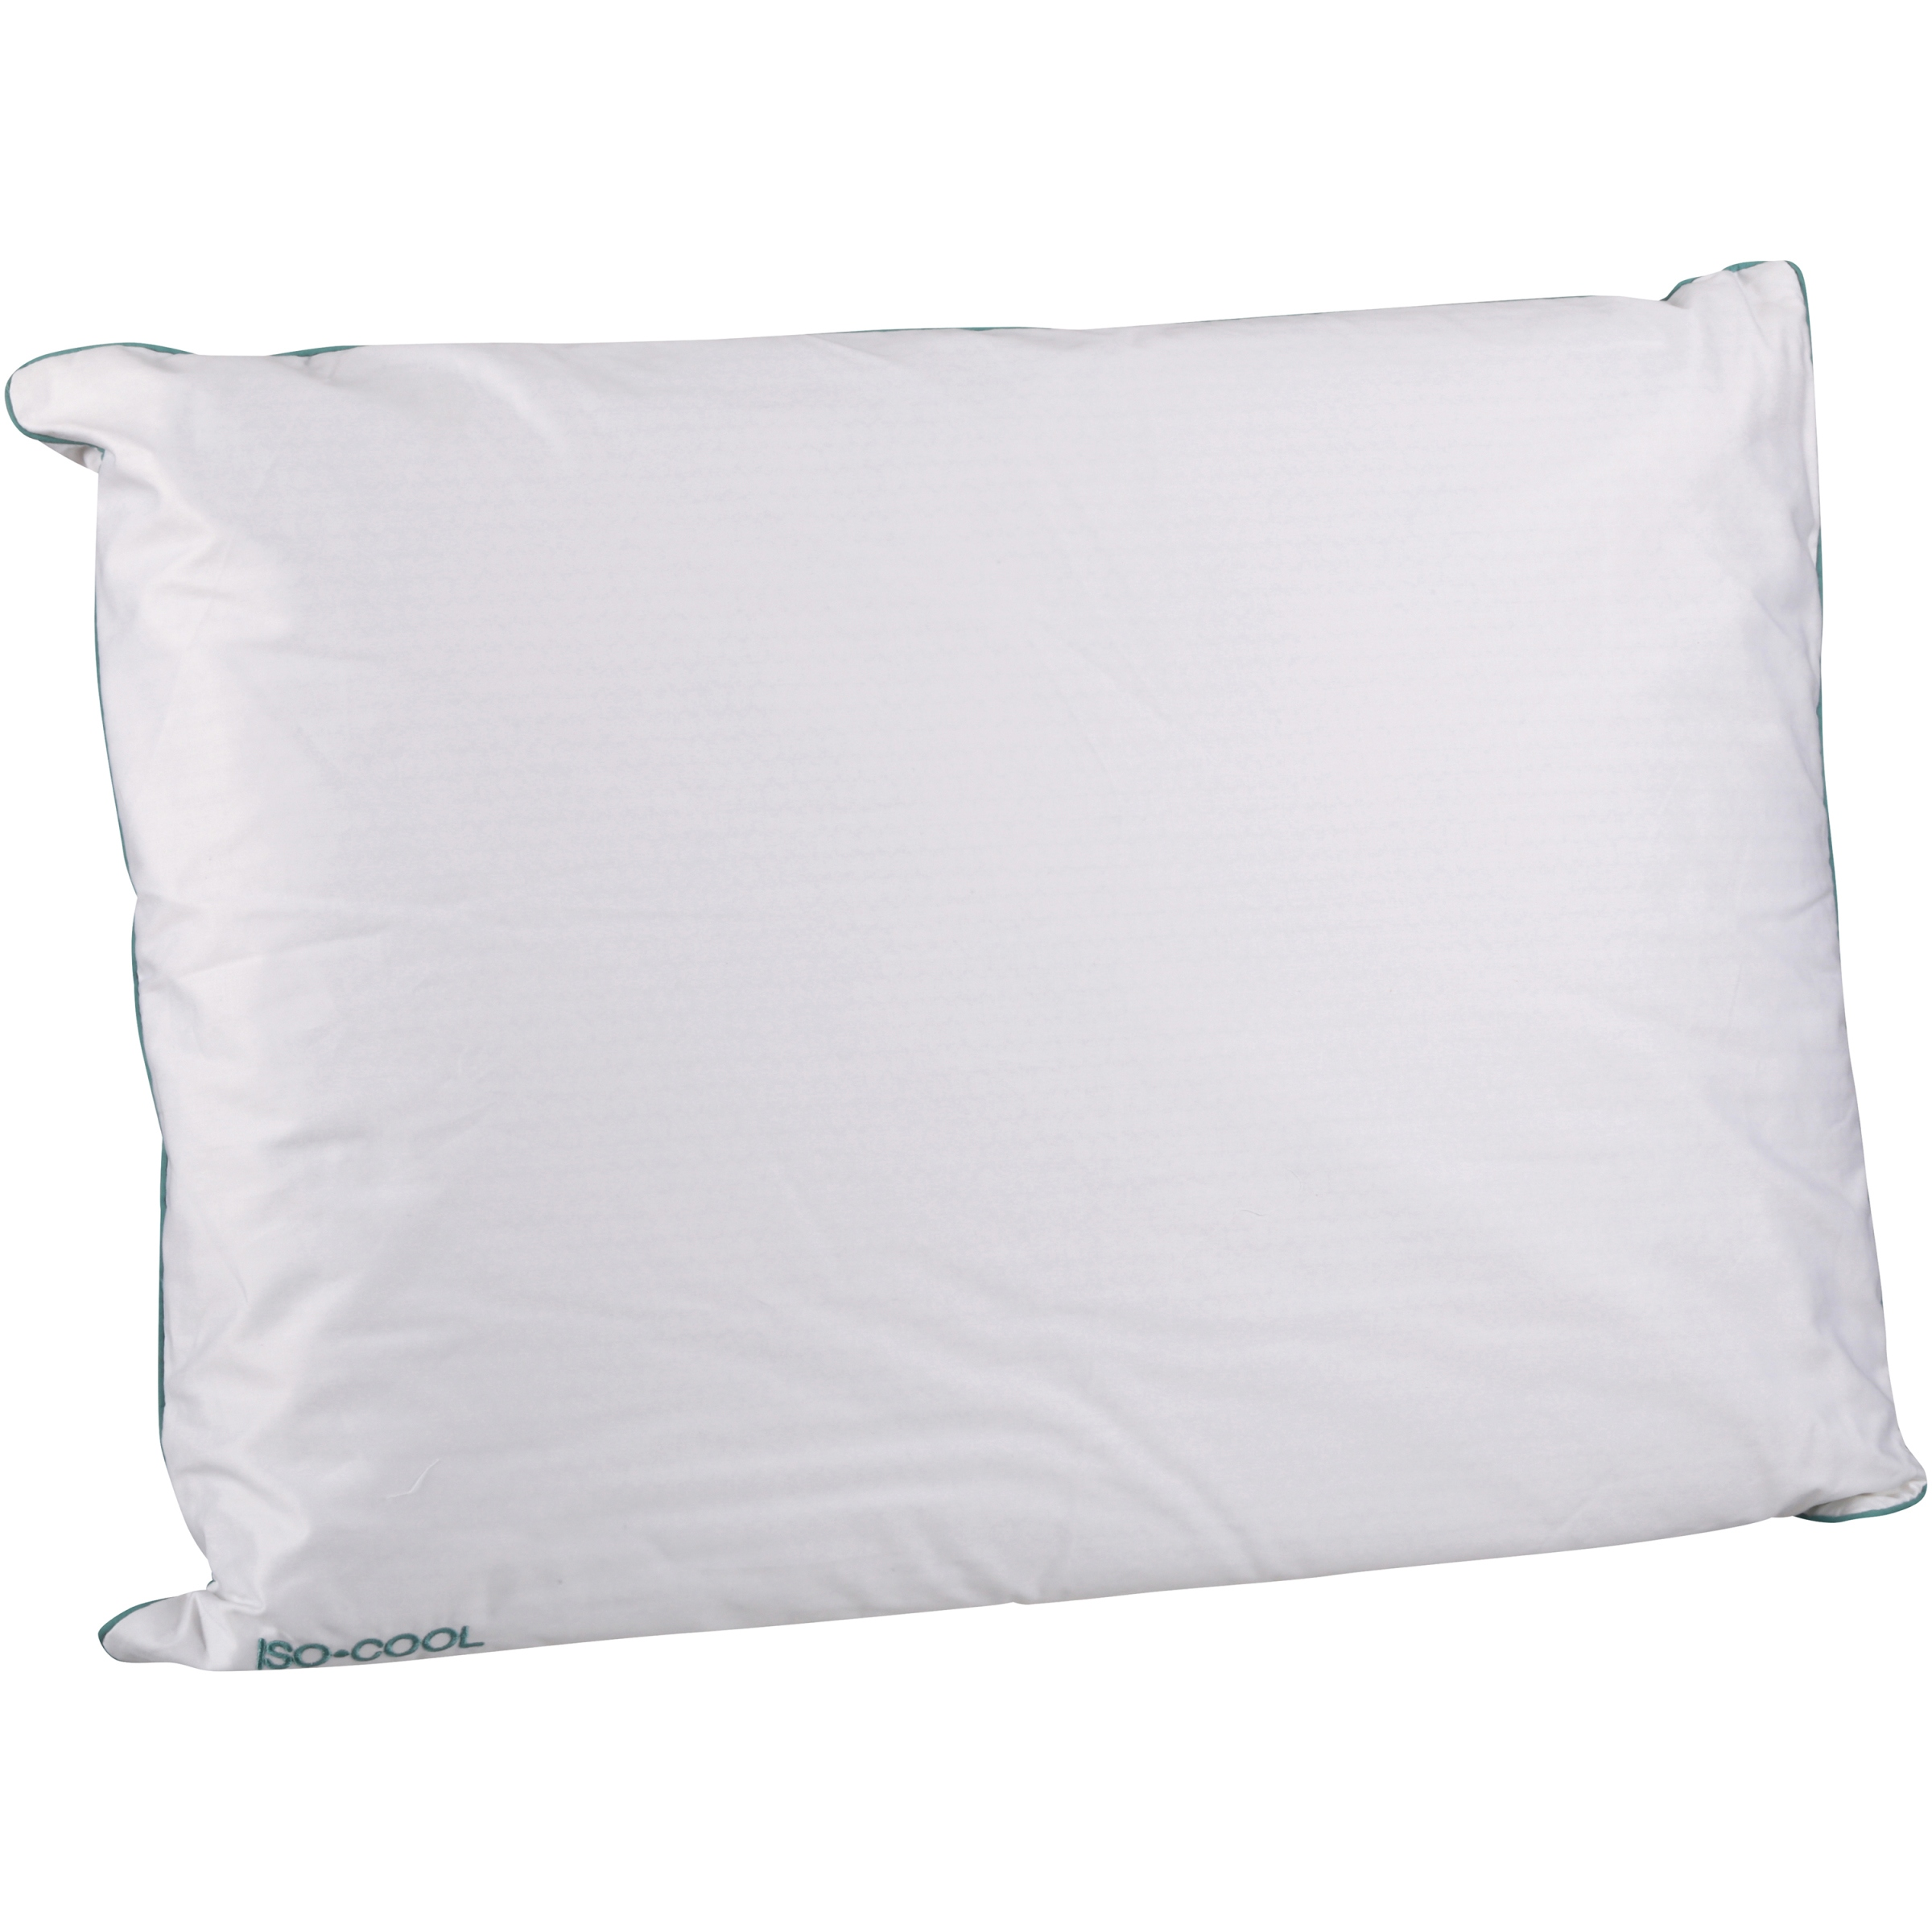 isotonic iso cool pillow review online